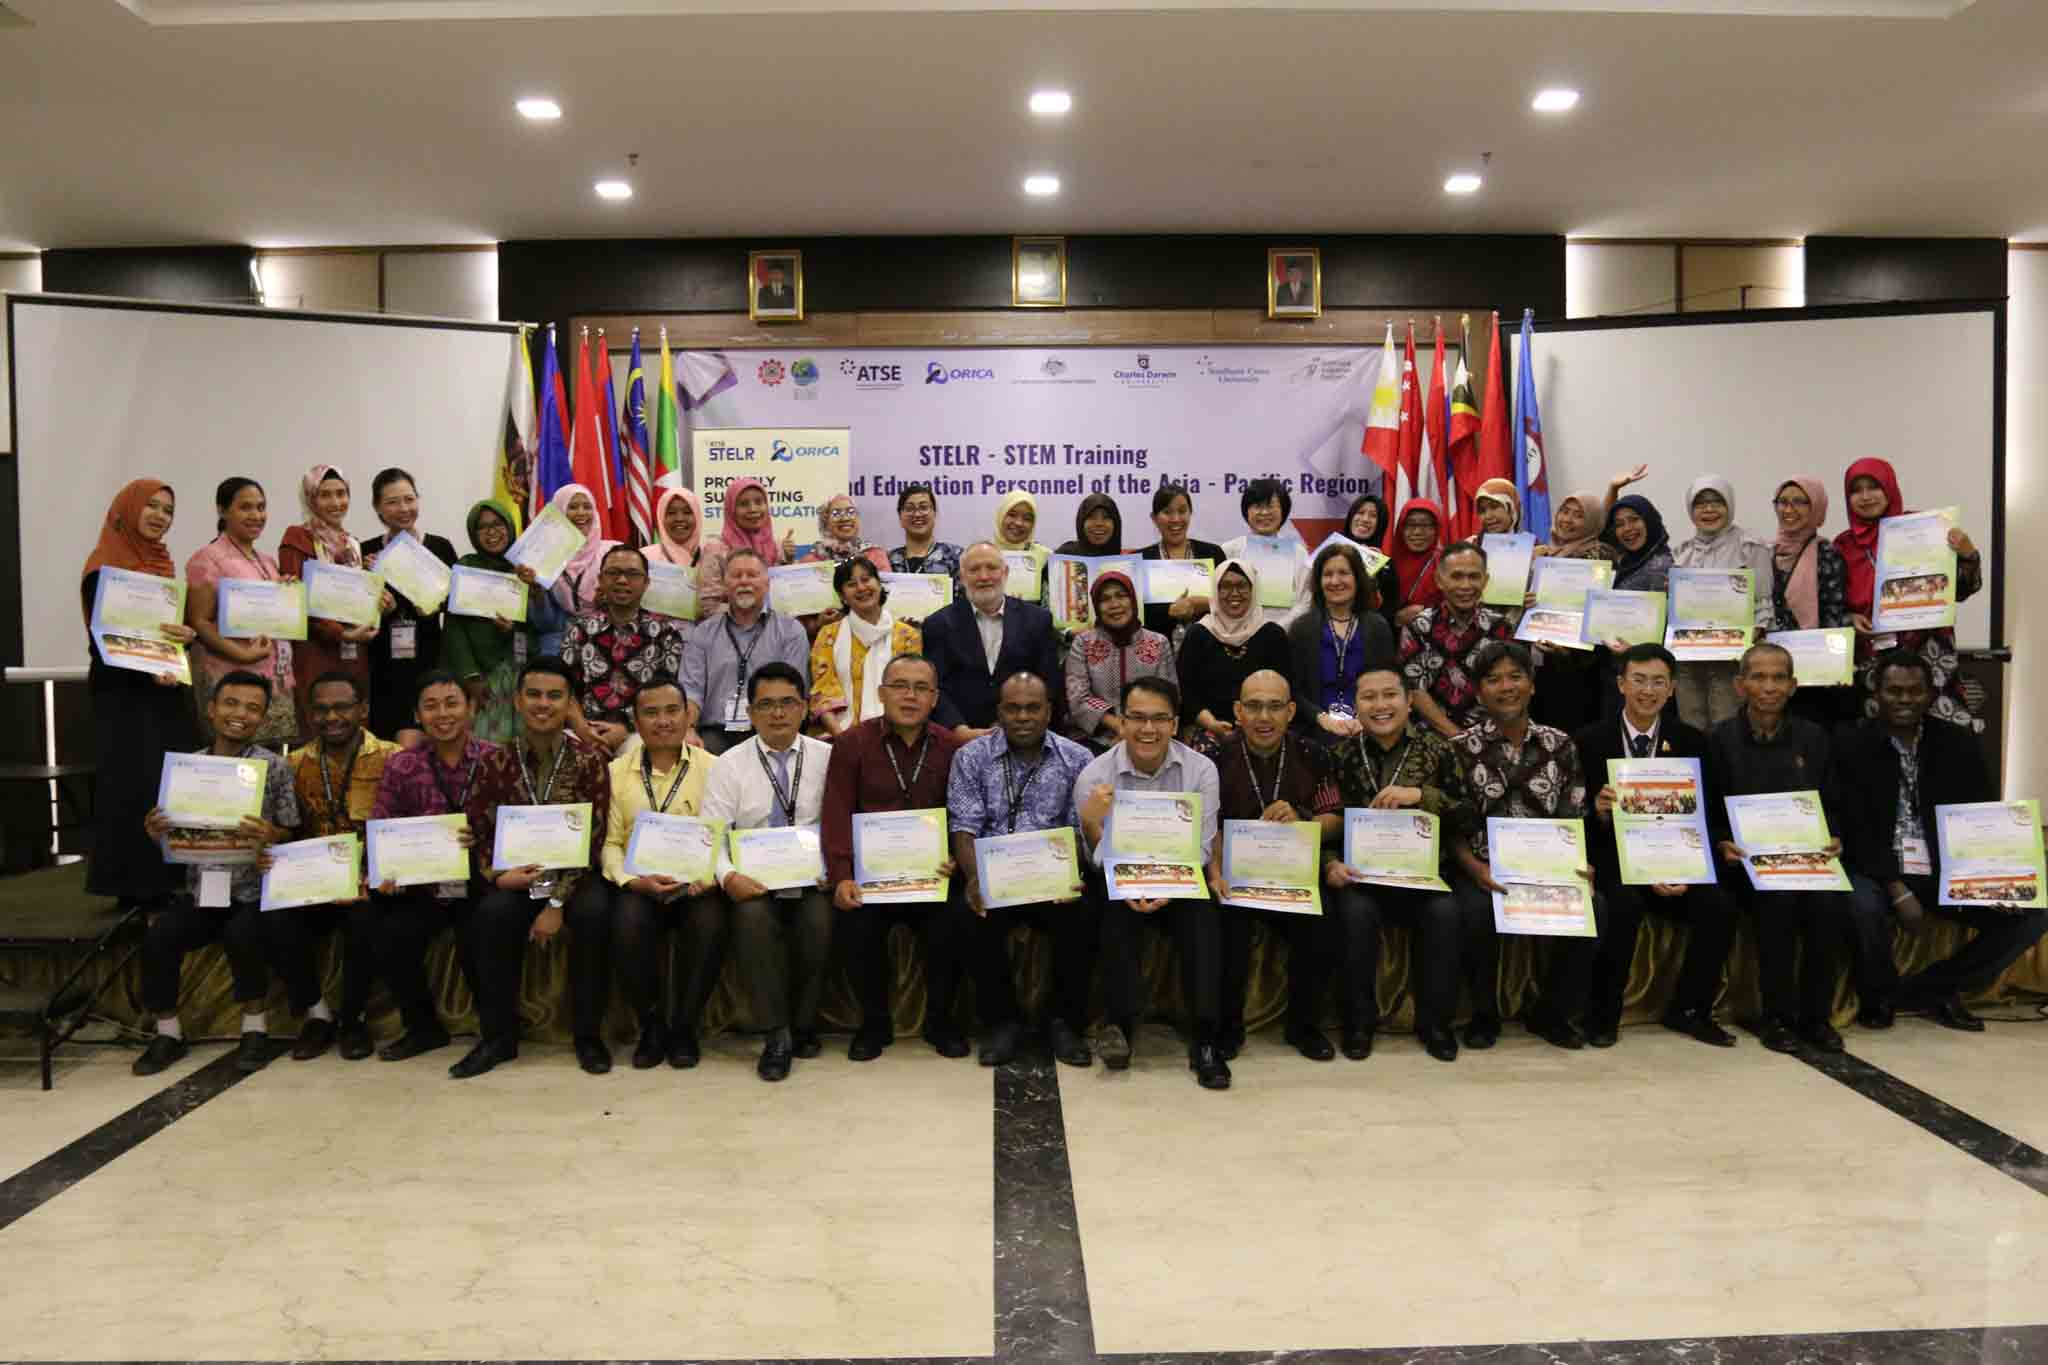 The STELR-STEM Training for Teachers and Education Personnel of Asia – Pacific Region